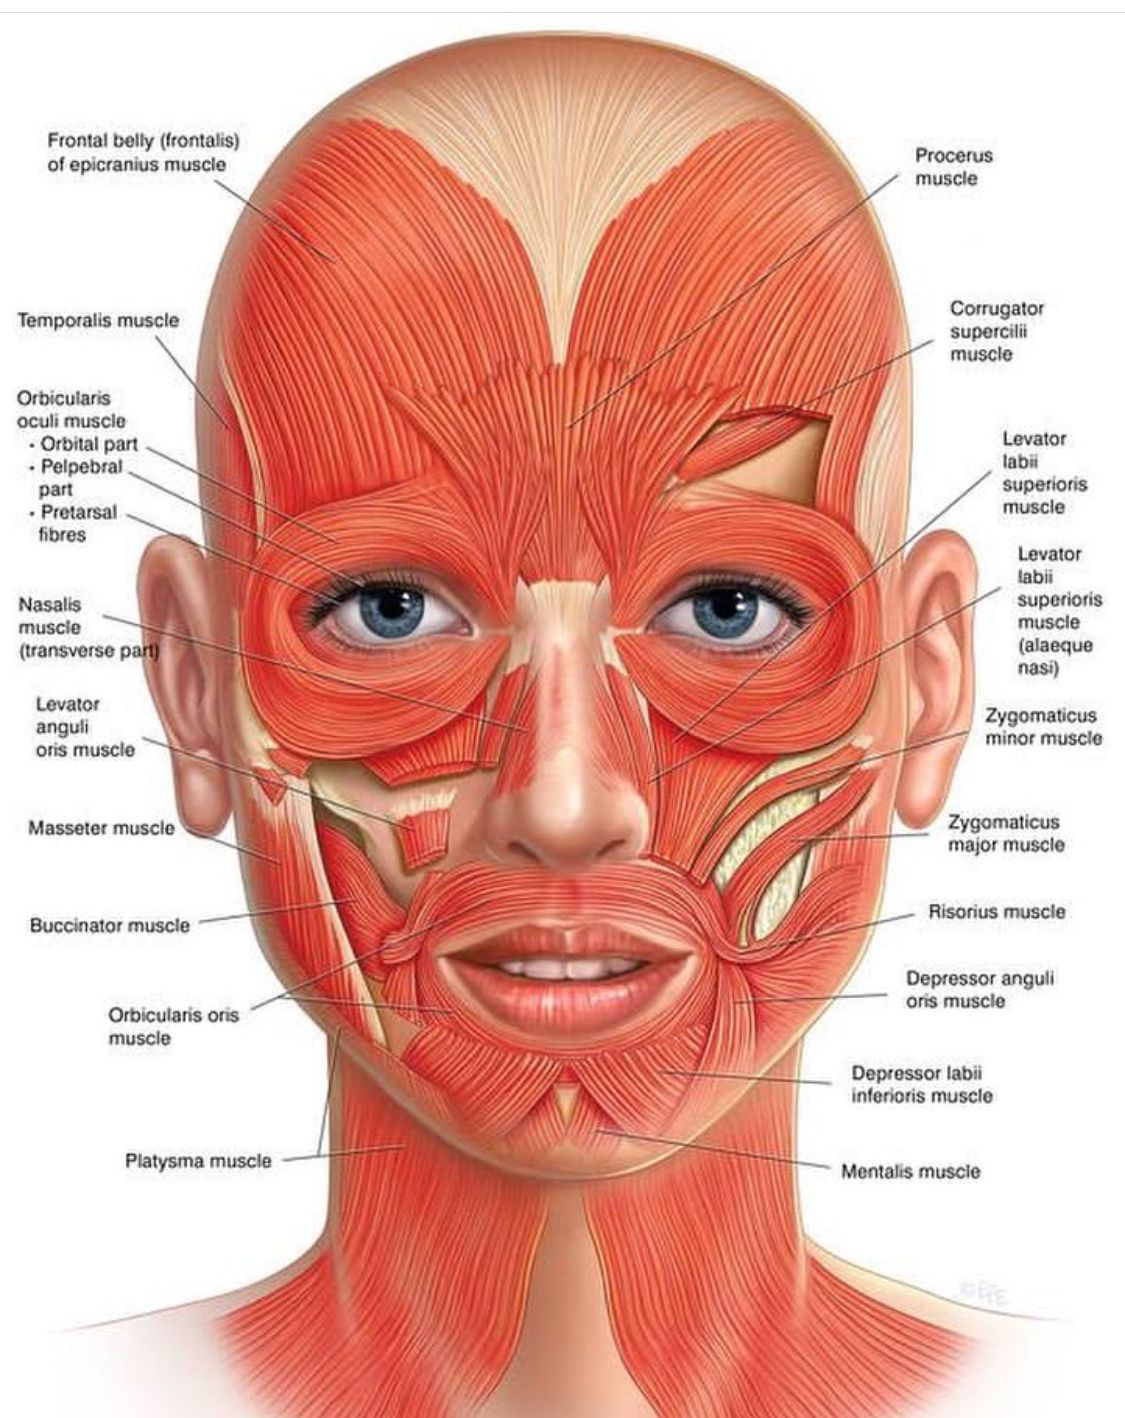 Know Your Face Do You Know That You Have 57 Muscles In Your Face Just Like Yoga Tones And Strengthens Your Body Facial Anatomy Facial Muscles Face Exercises